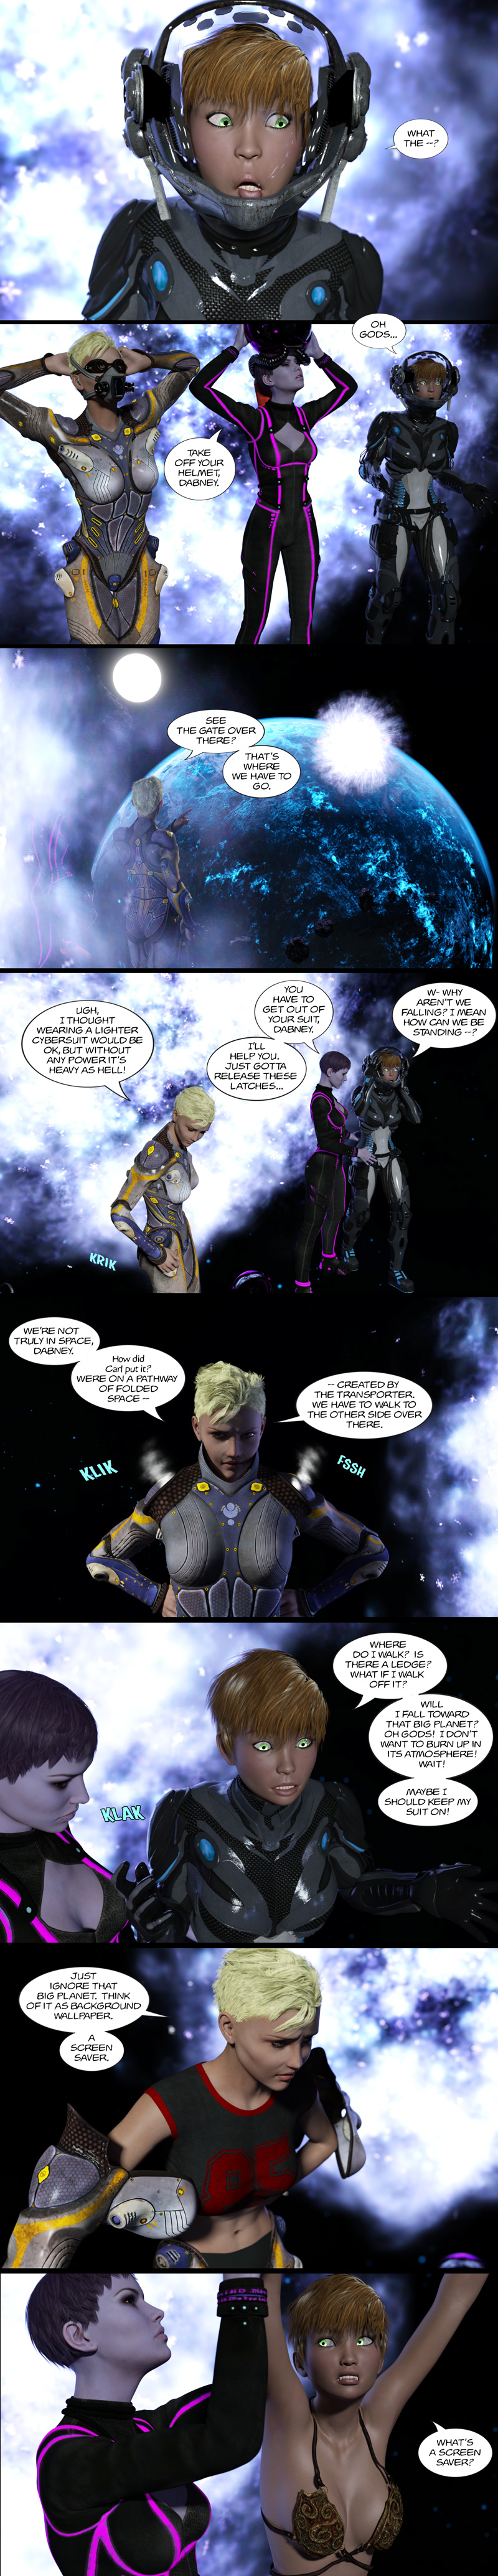 Chapter 14, page 9 – space walk and what's a screensaver?